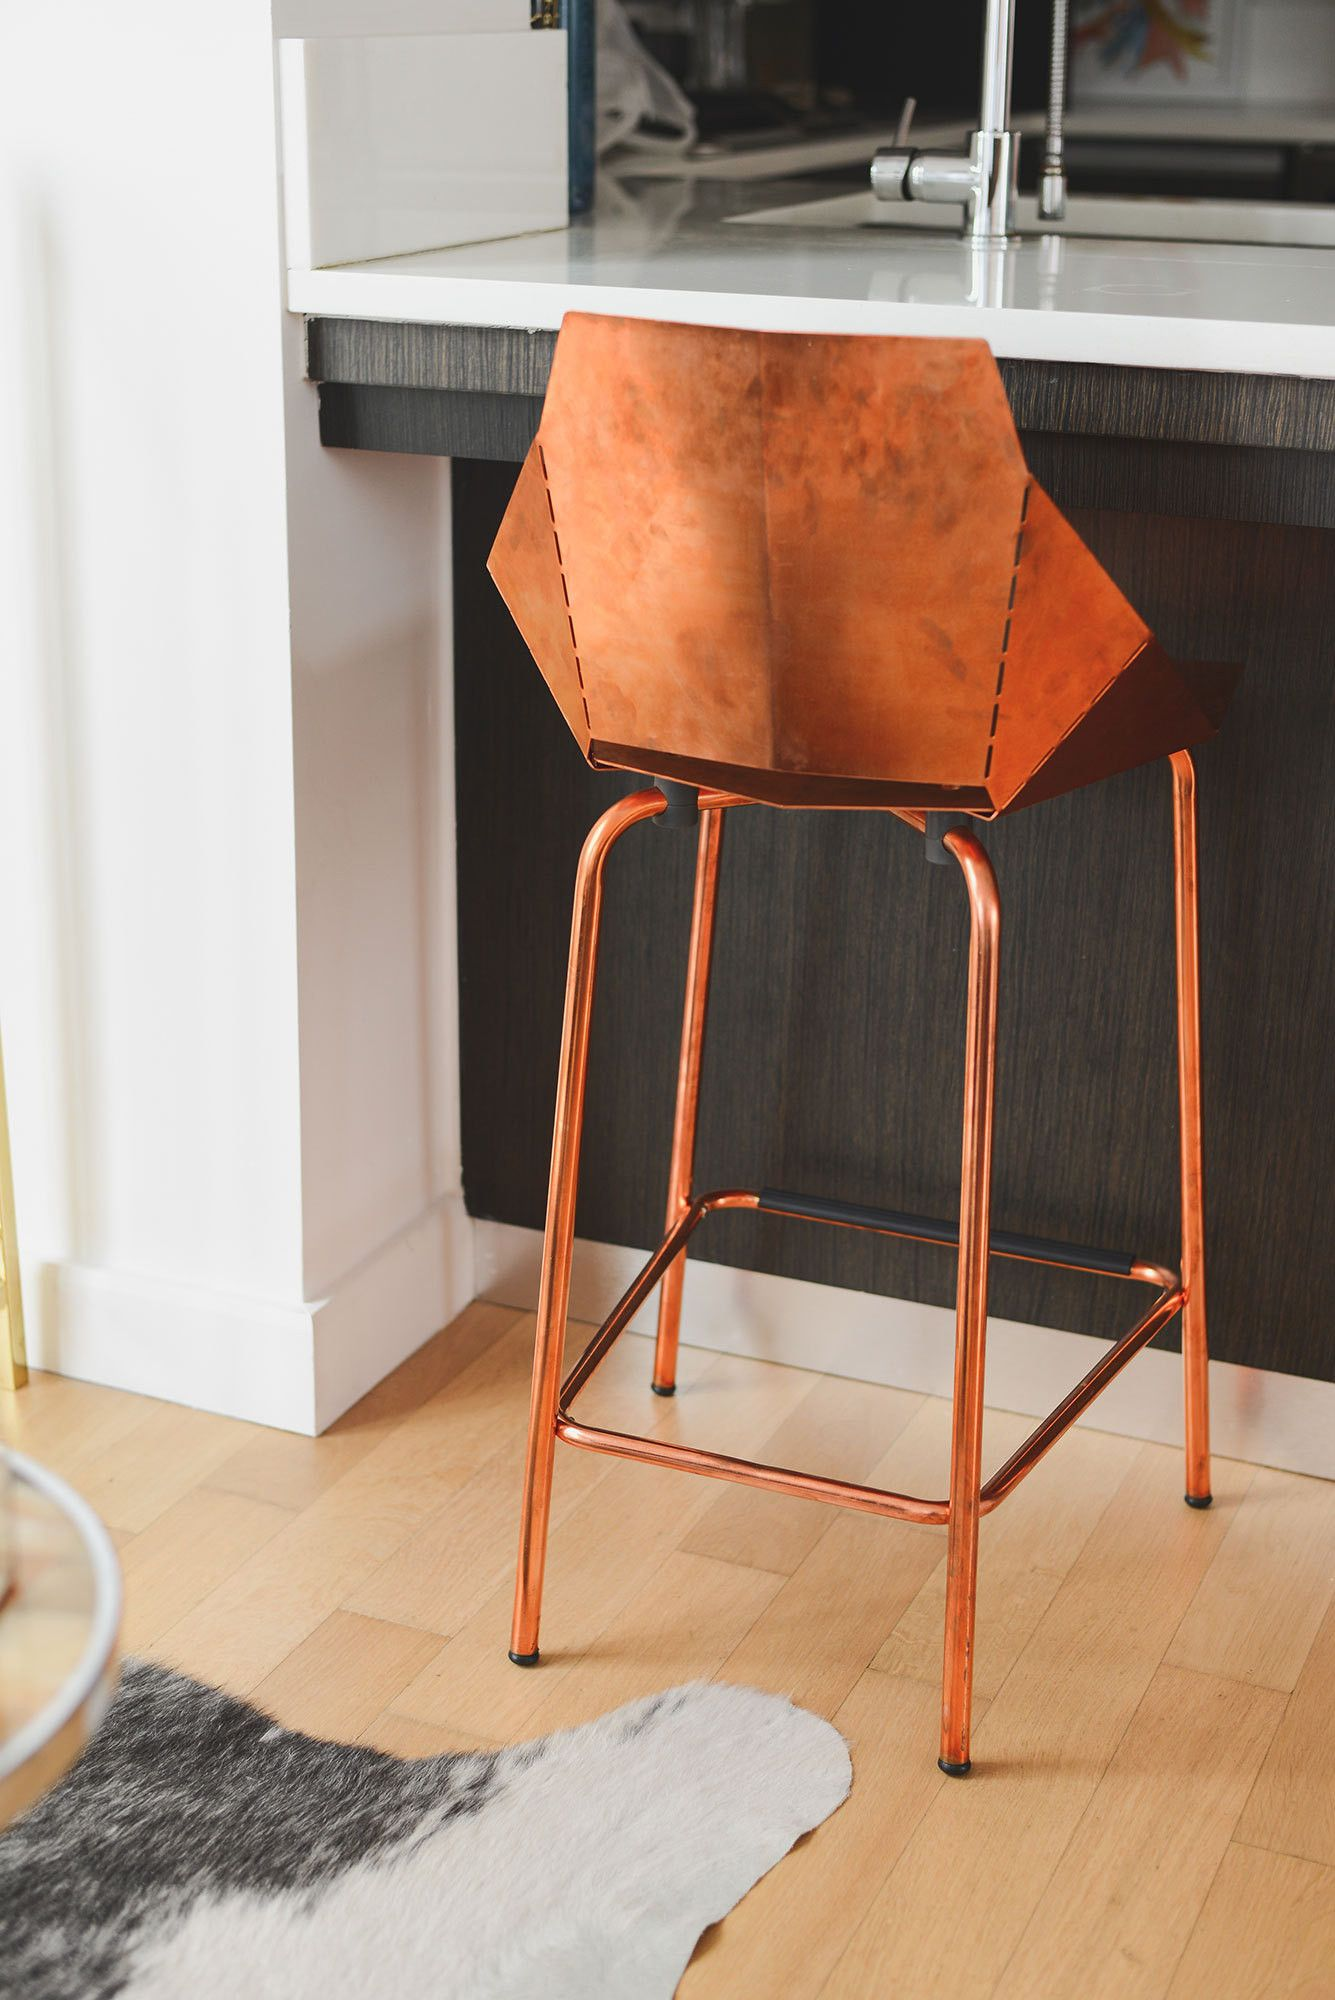 Merveilleux Blu Dot Real Good Copper Stool // At Home With Homepolishu0027s Noa Santos